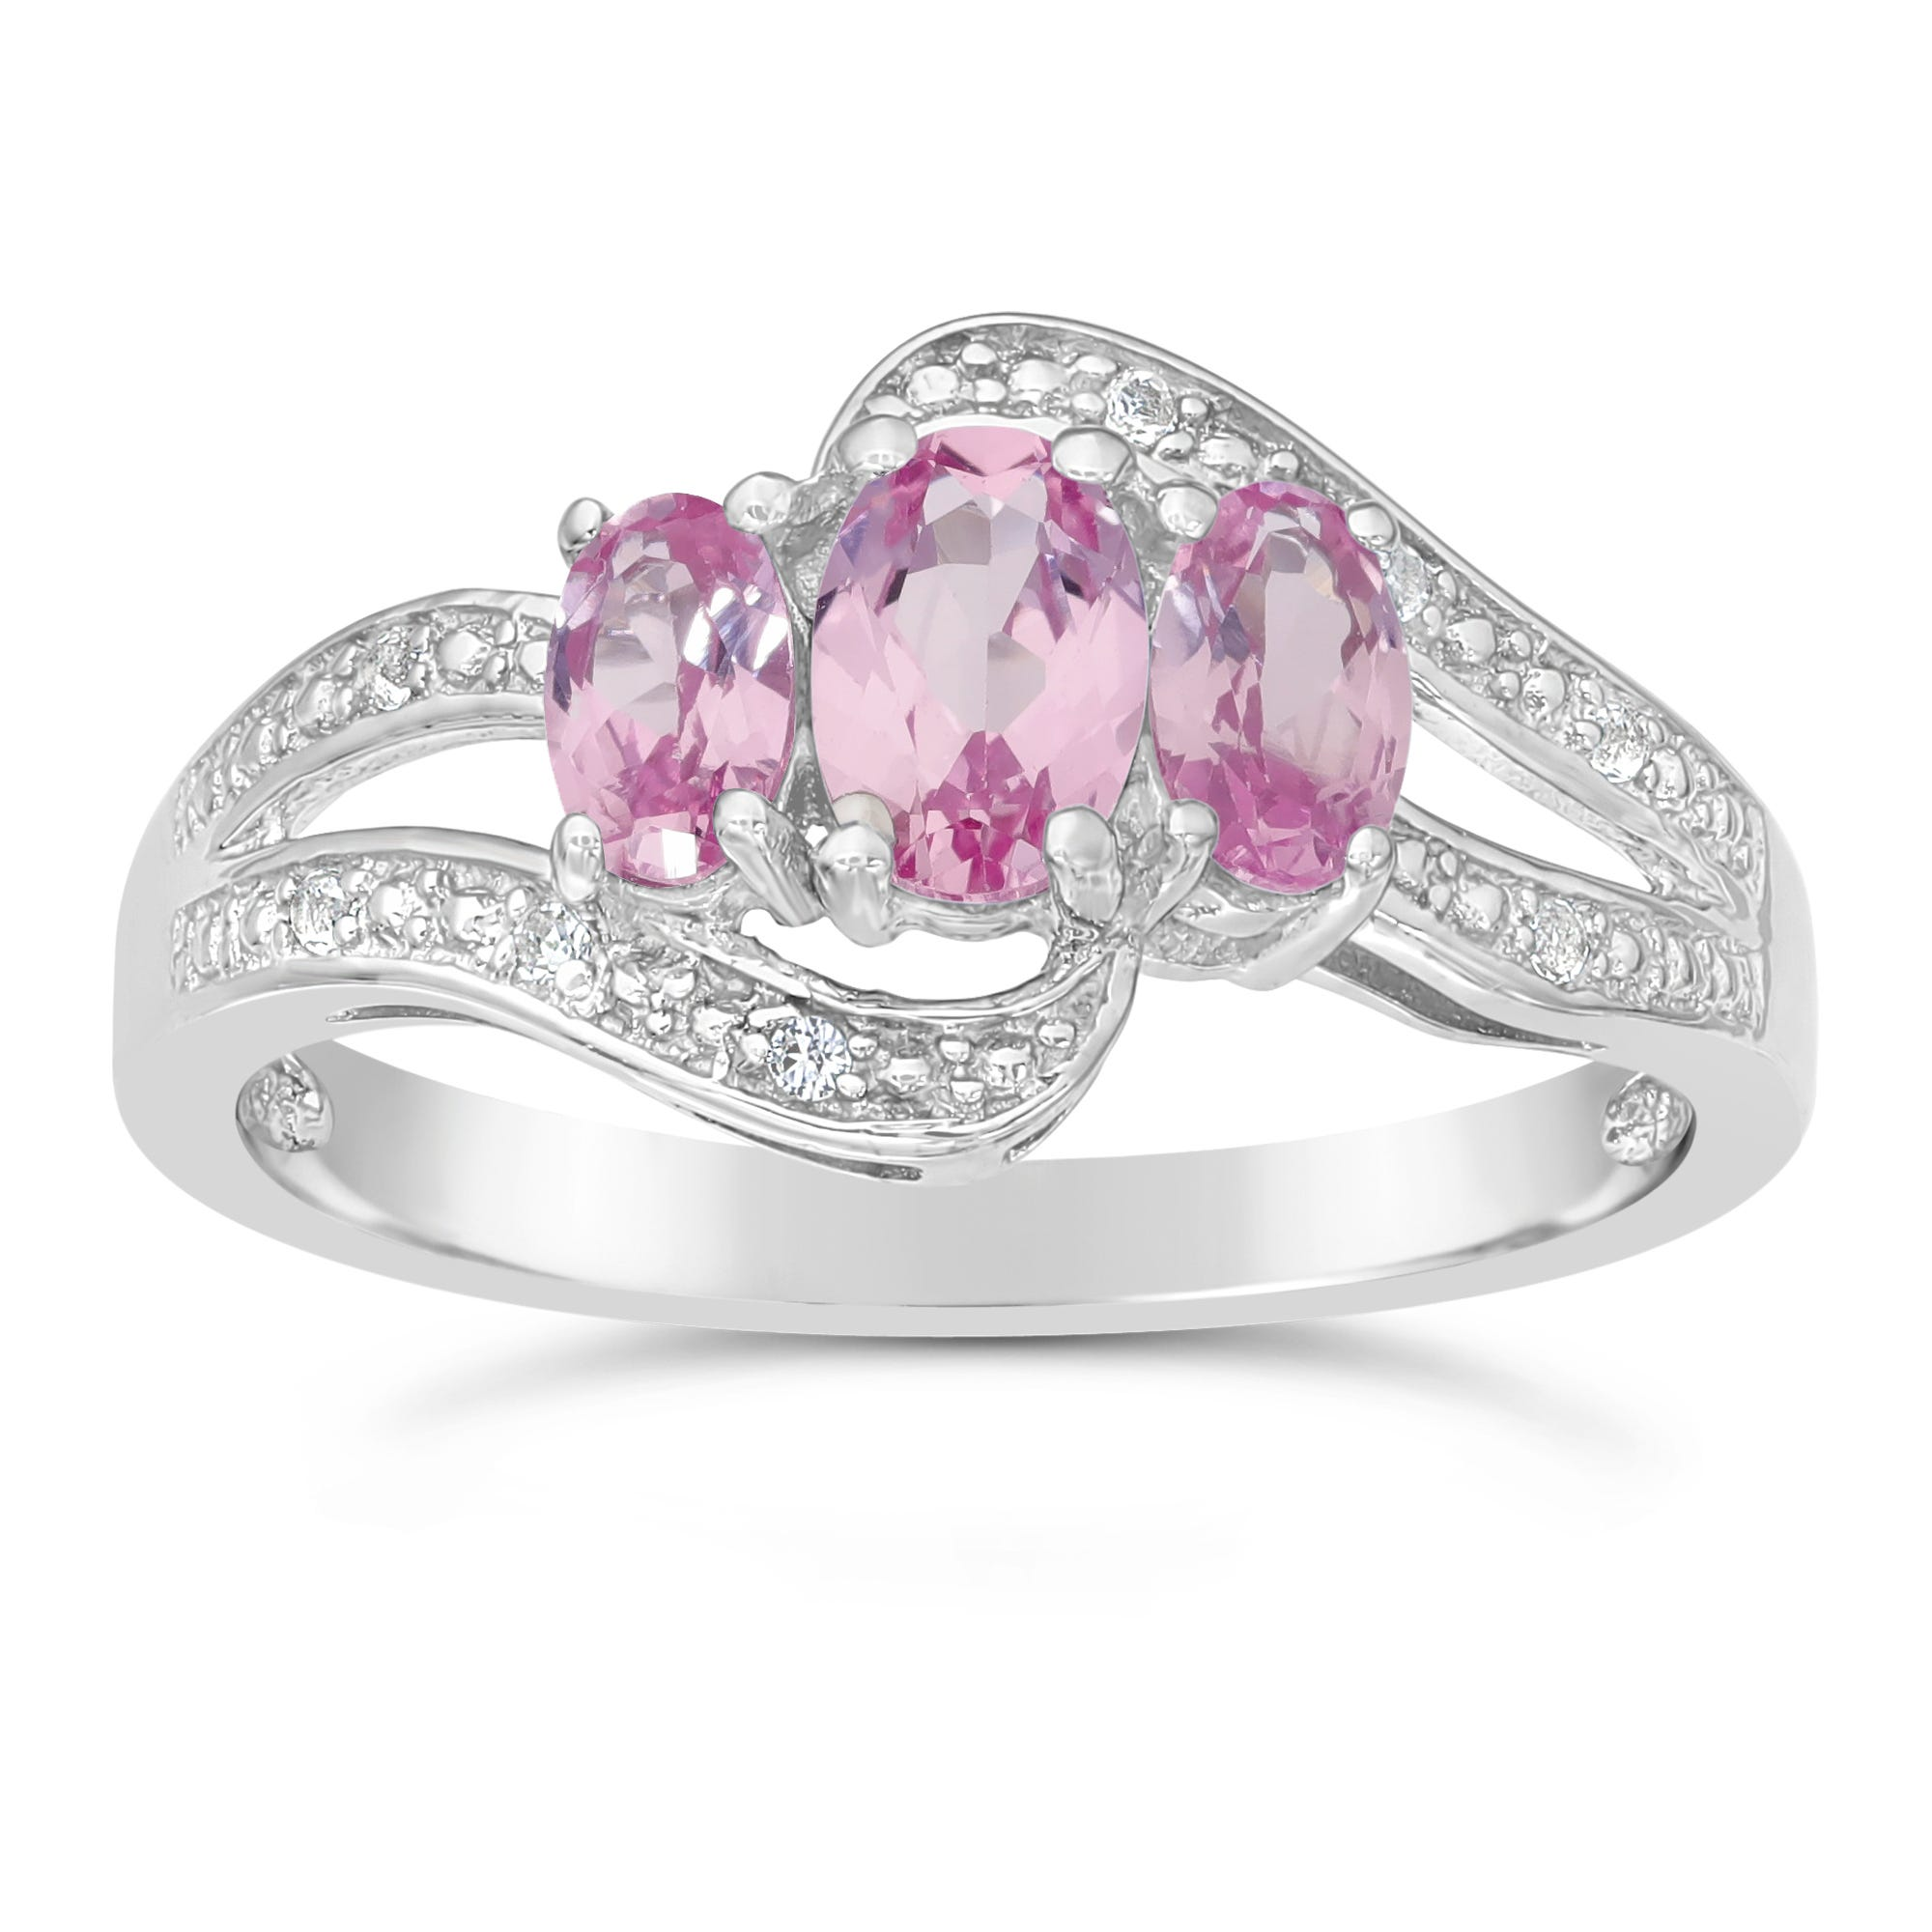 Triple Oval Created Pink Sapphire and Created White Sapphire Ring in Sterling Silver